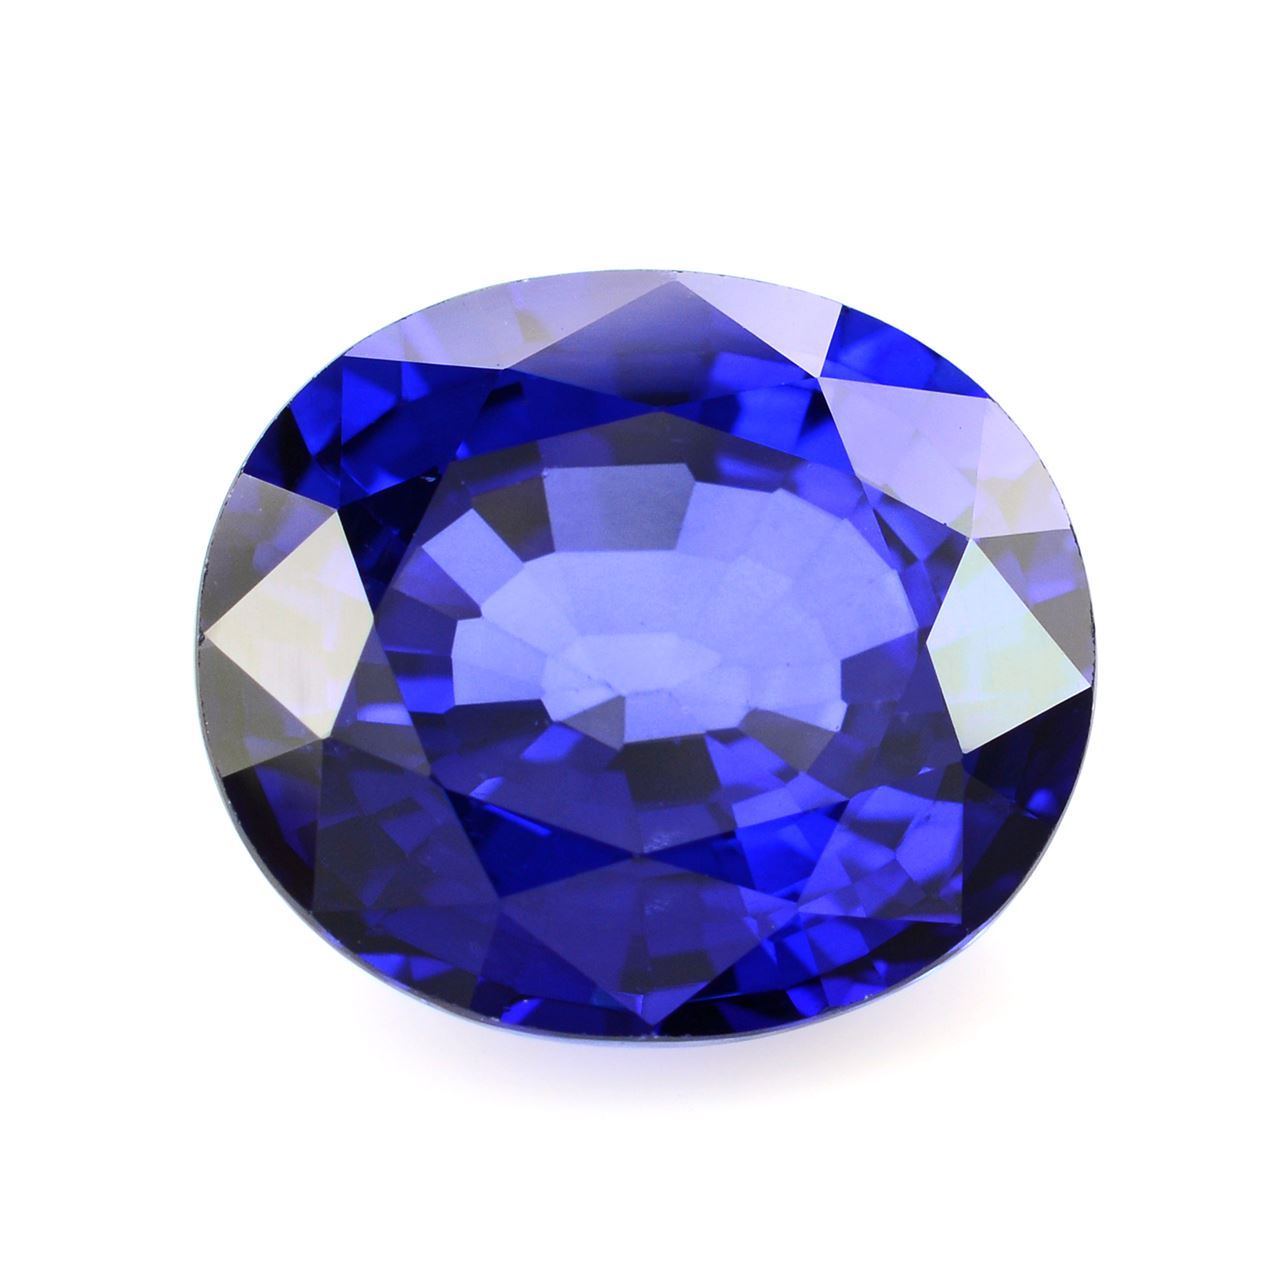 of colourful sapphires blue the world sapphire large collection vibrant artificial a